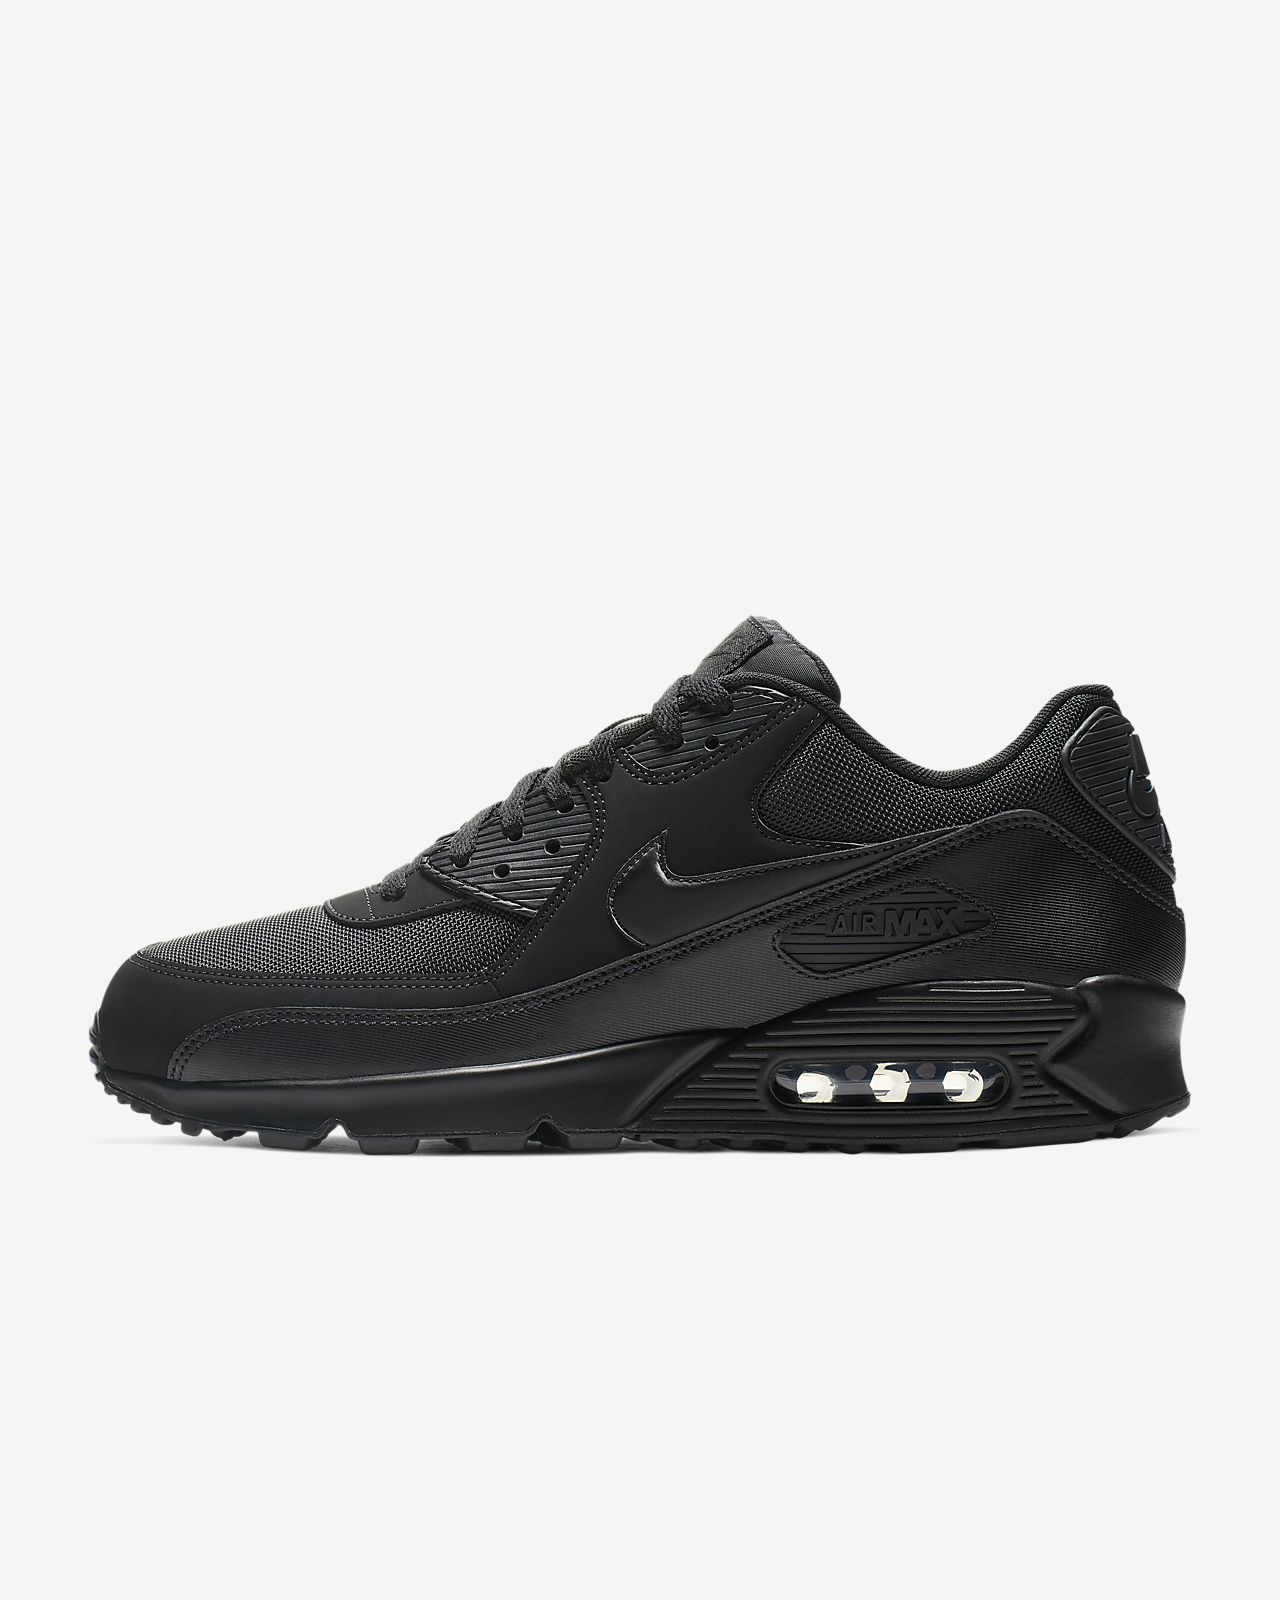 a2be8993a0 Nike Air Max 90 Essential Men's Shoe. Nike.com NO